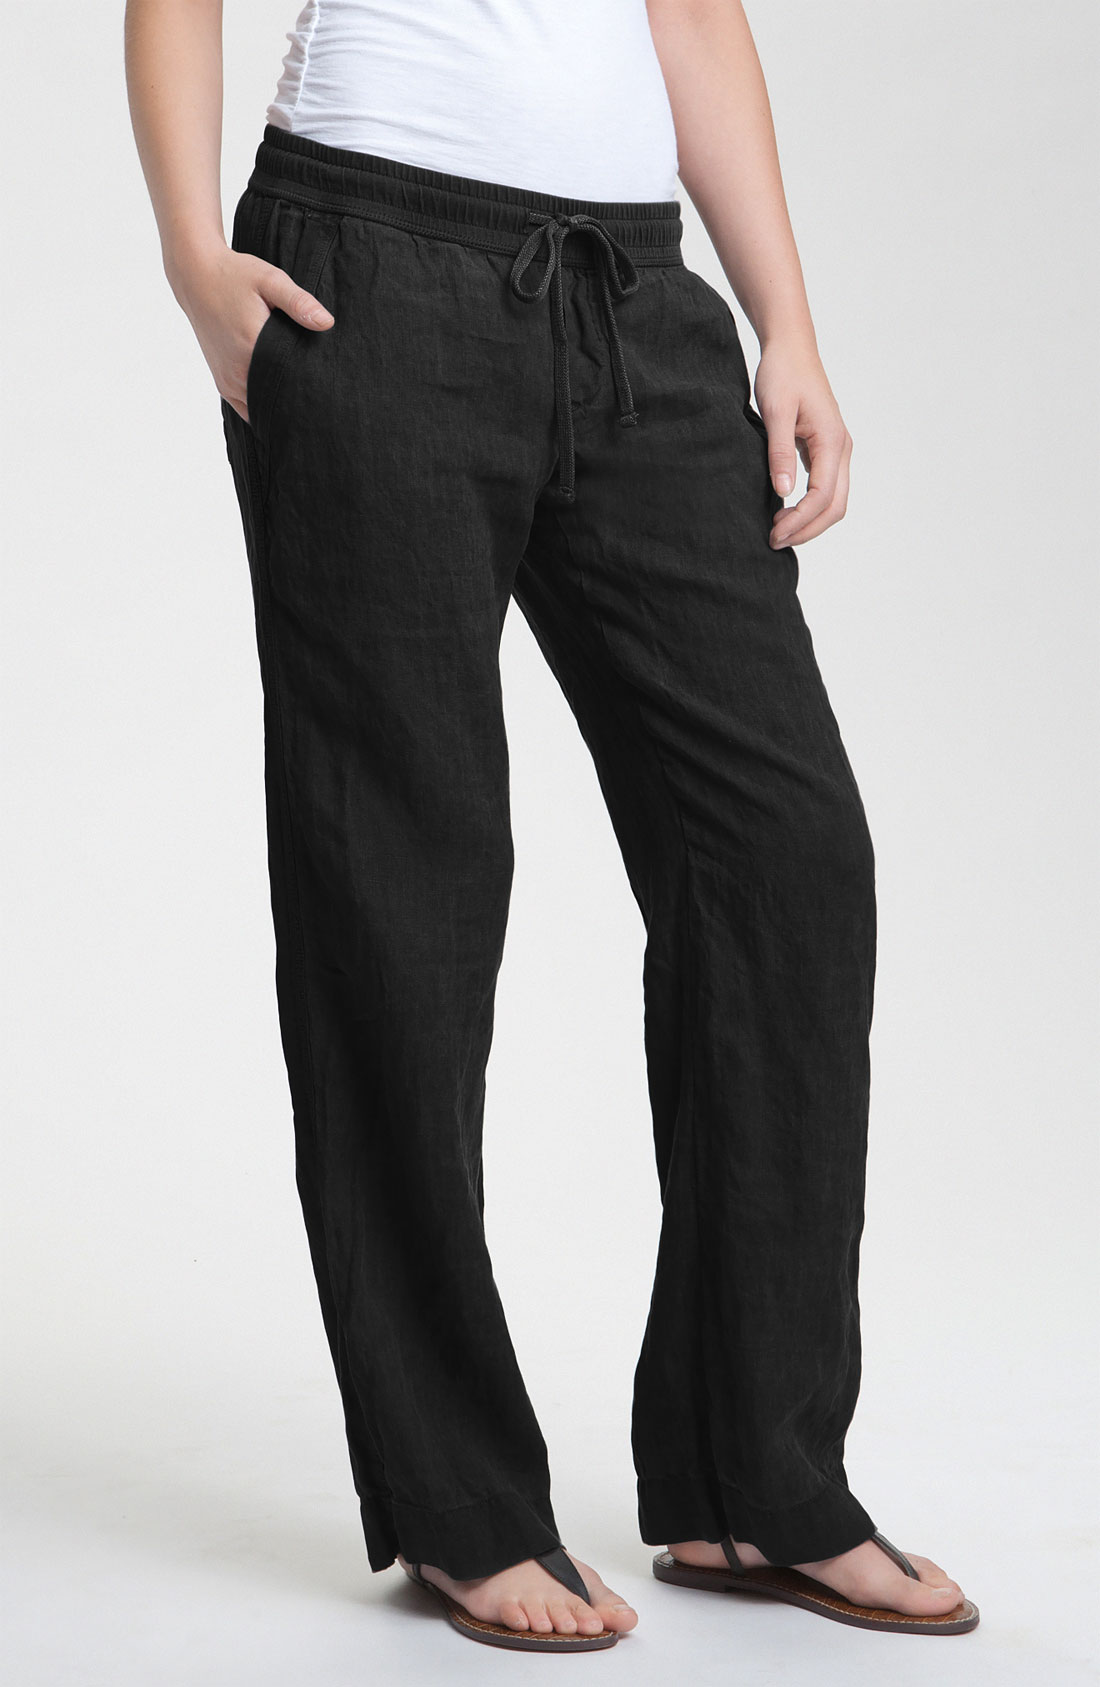 James perse Linen Pants in Black | Lyst